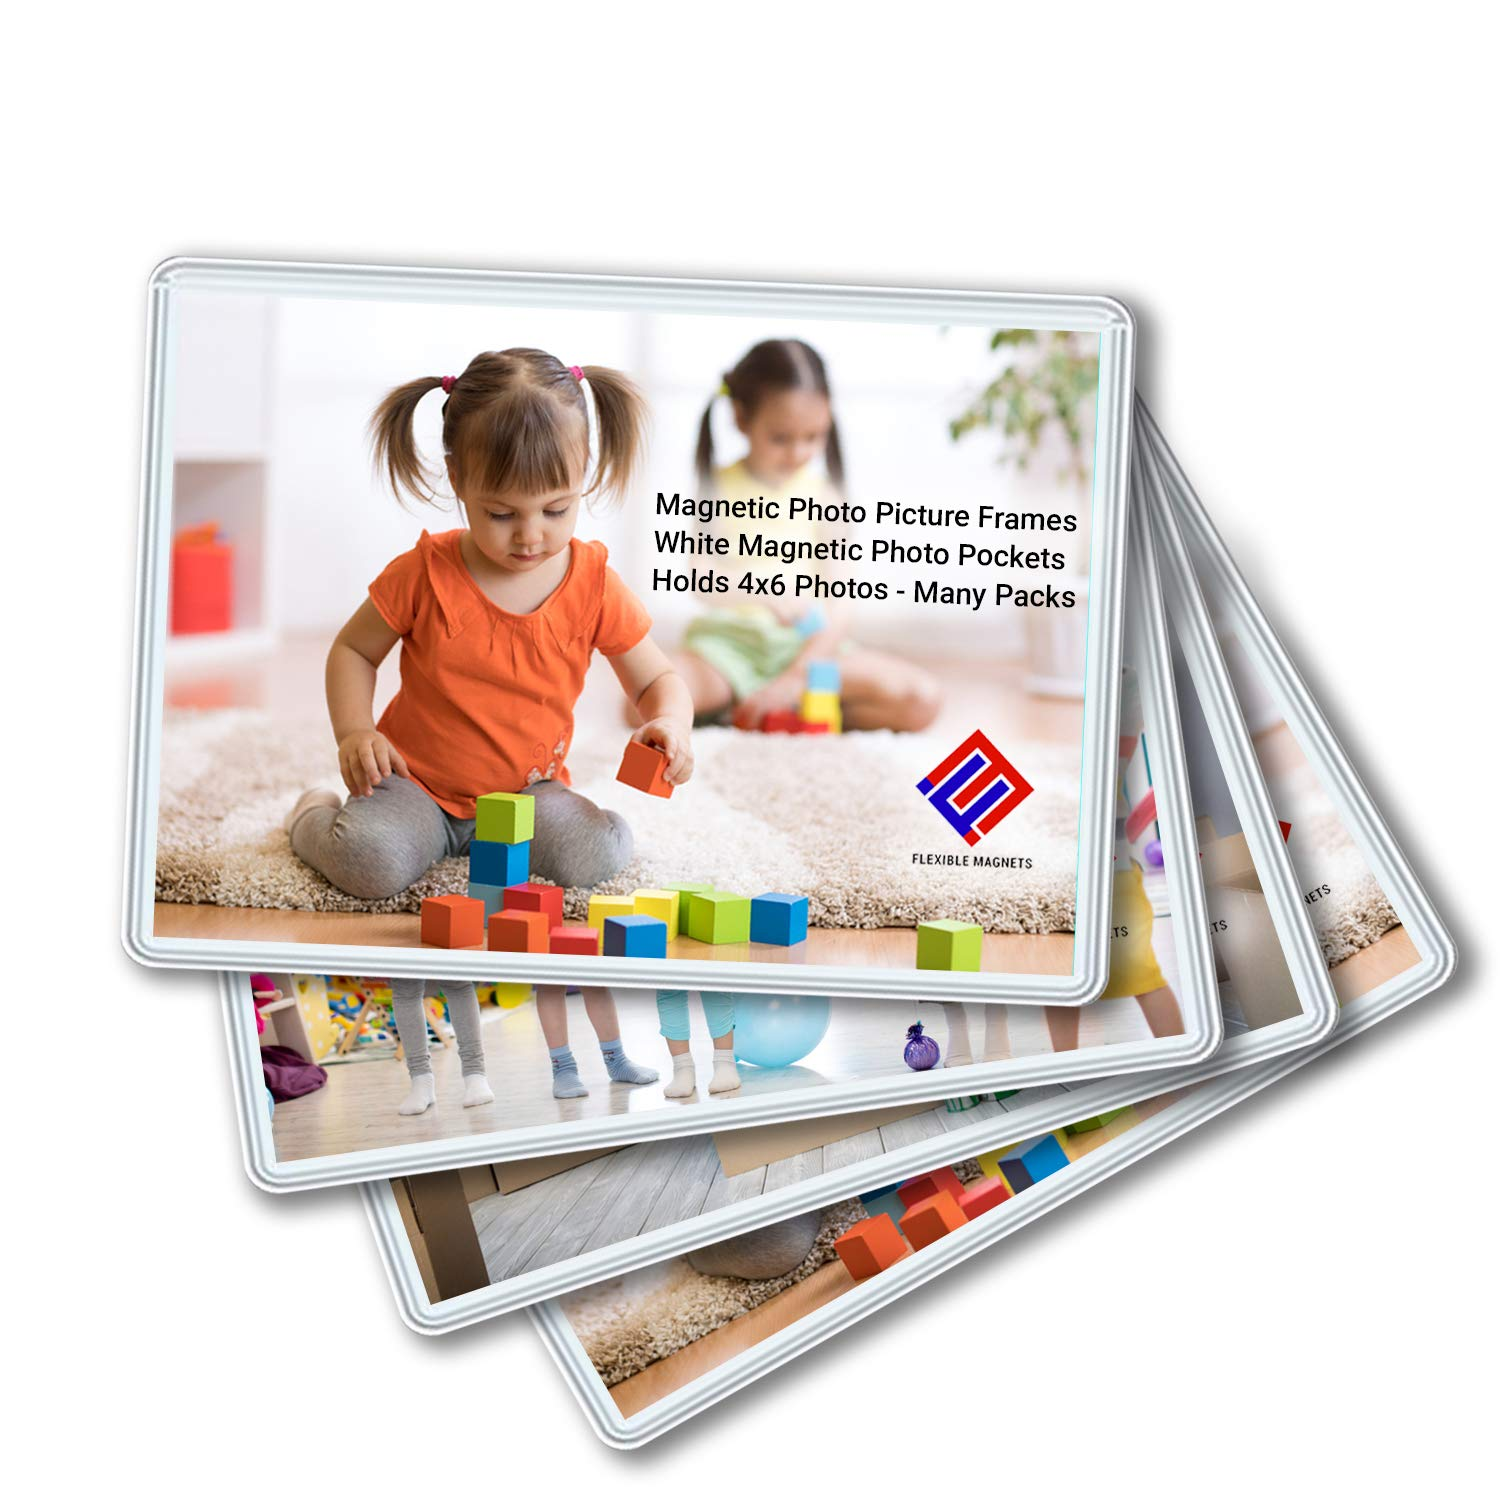 10 Pack Magnetic Photo Picture Frames - White Magnetic Photo Pockets - Holds 4x6 Photos by Flexible Magnets